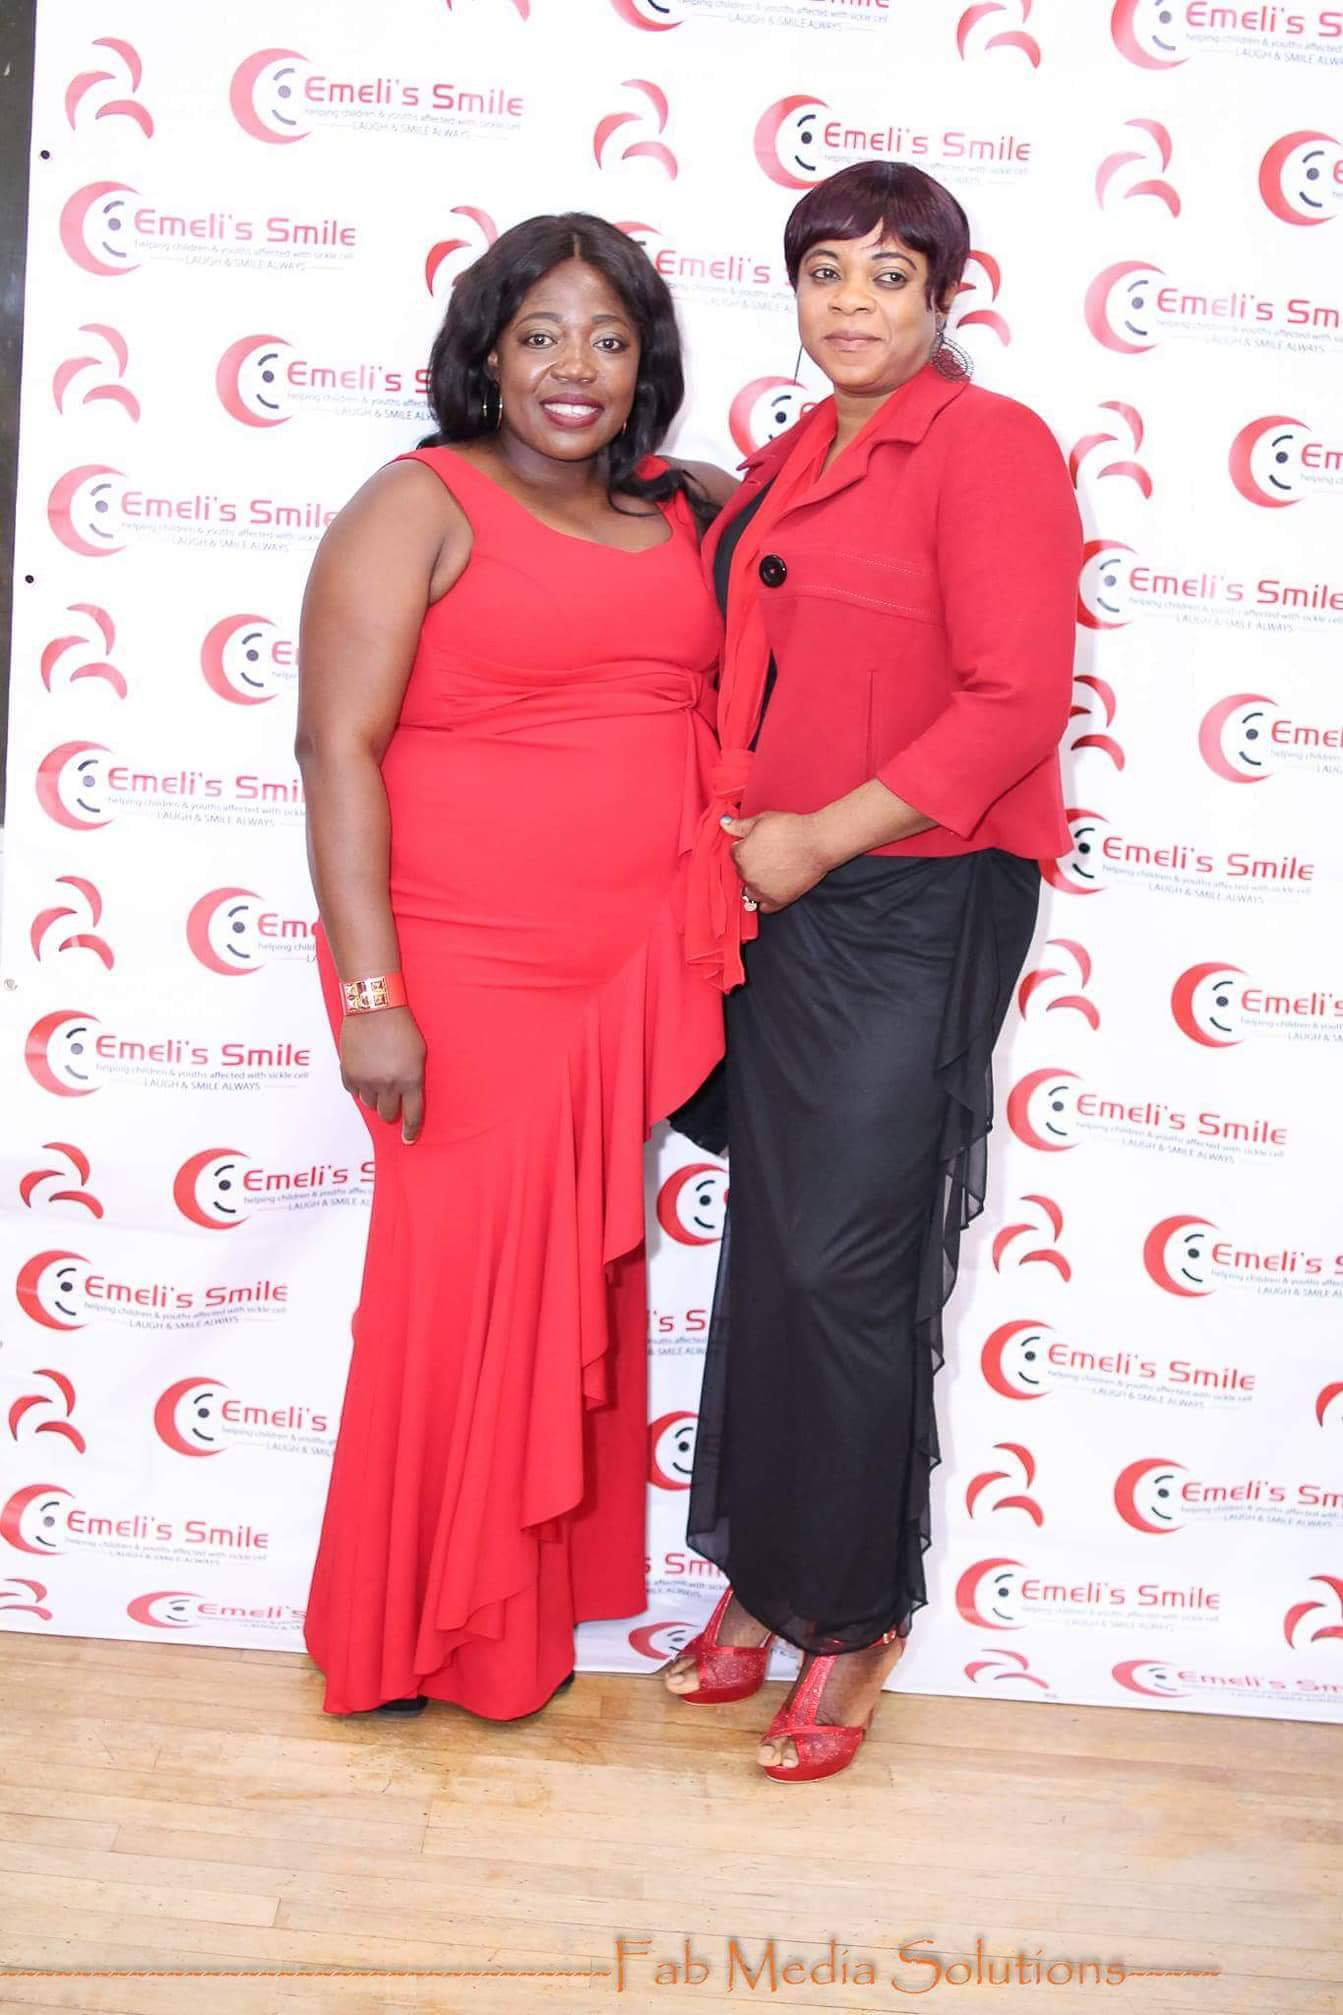 Nora Brown Sickle cell disease